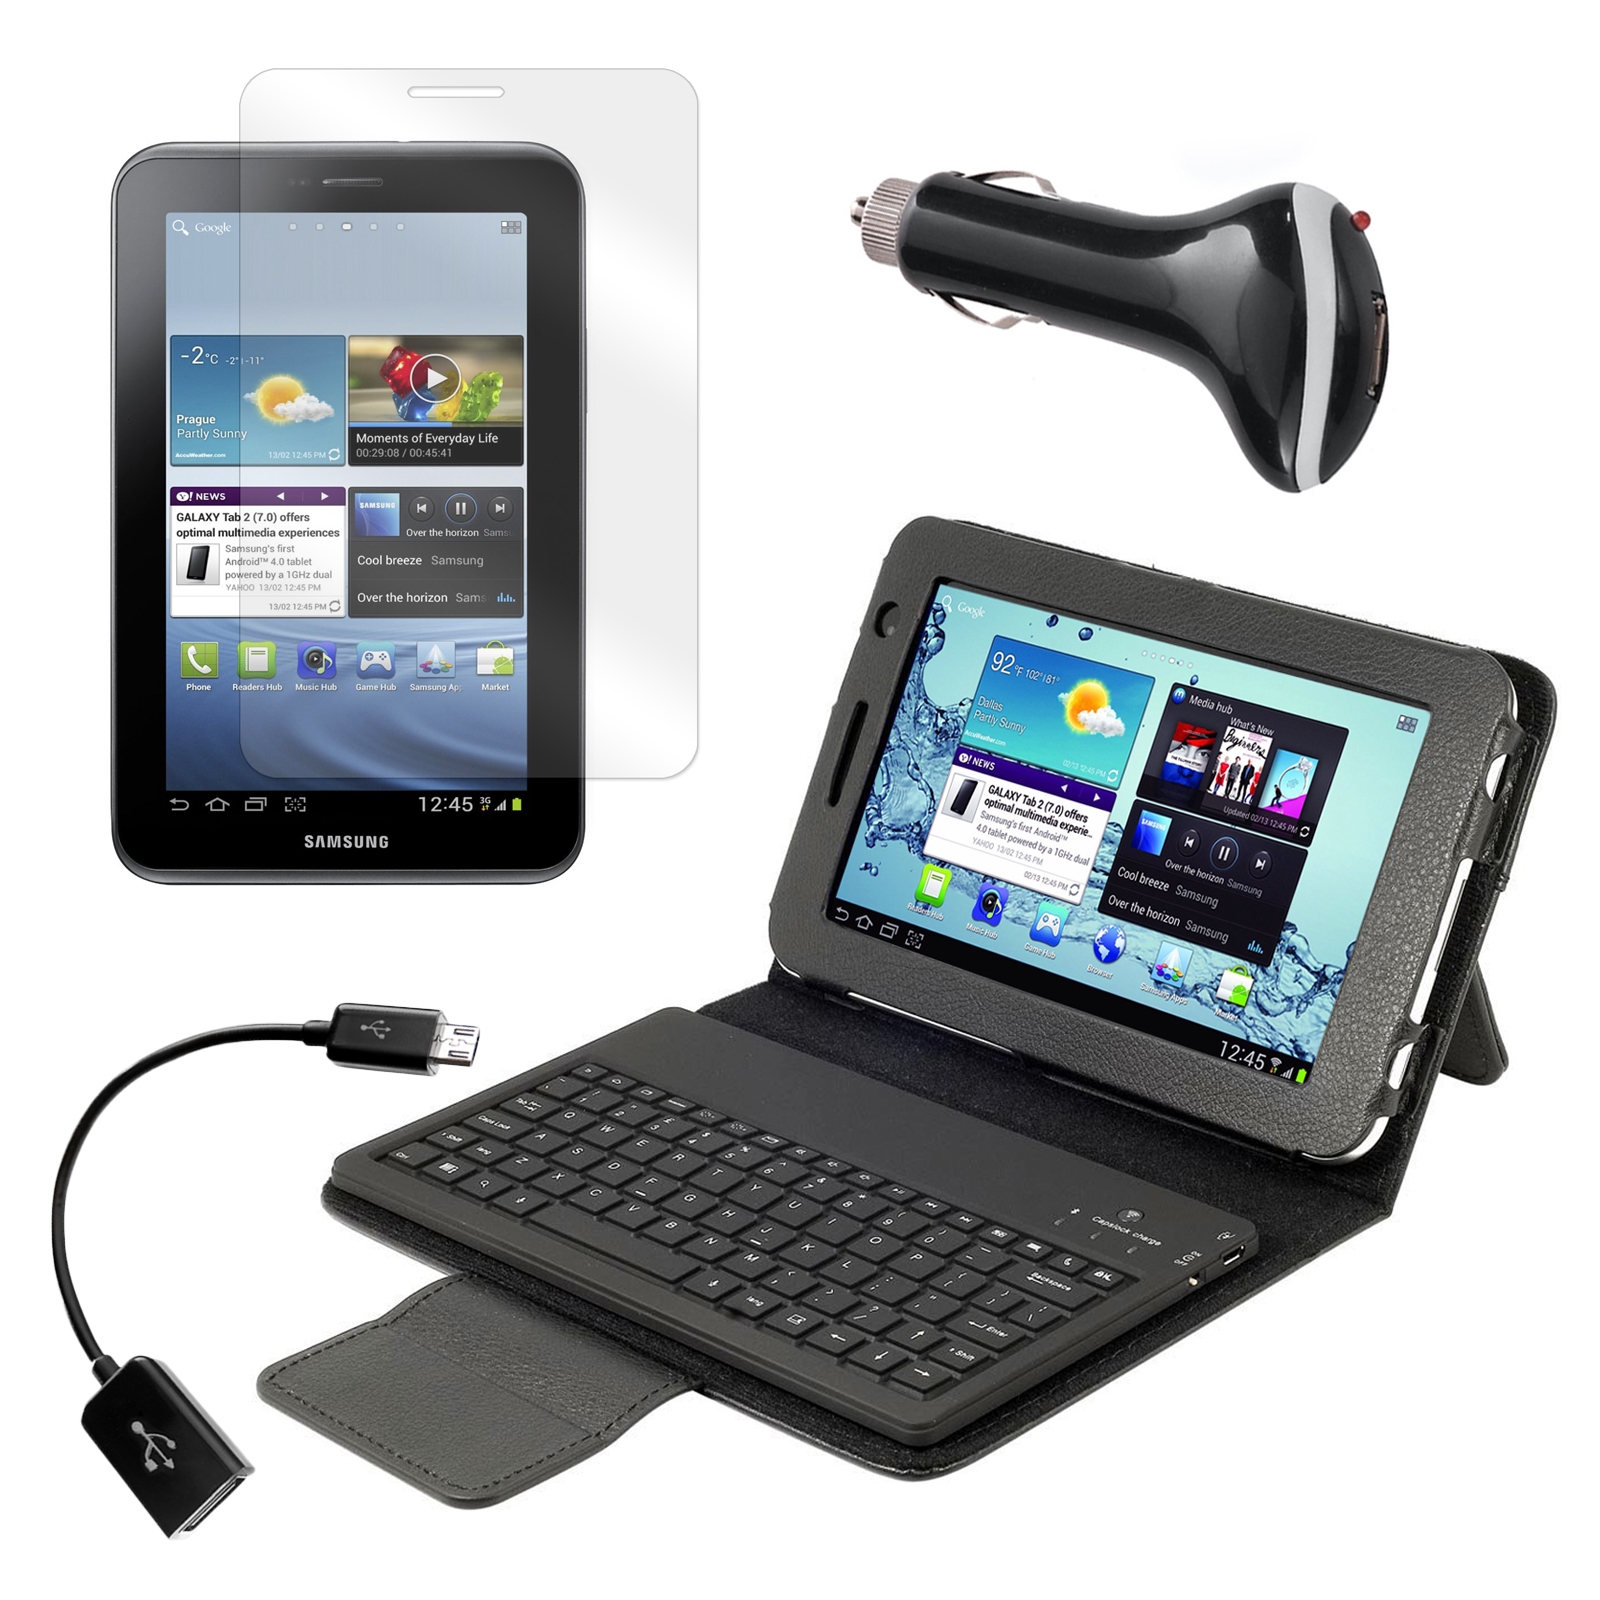 "Bluetooth Keyboard Folio with Screen Protector, OTG Cable, and Car Charger for Samsung Galaxy Tab 2 7"" Tablet"